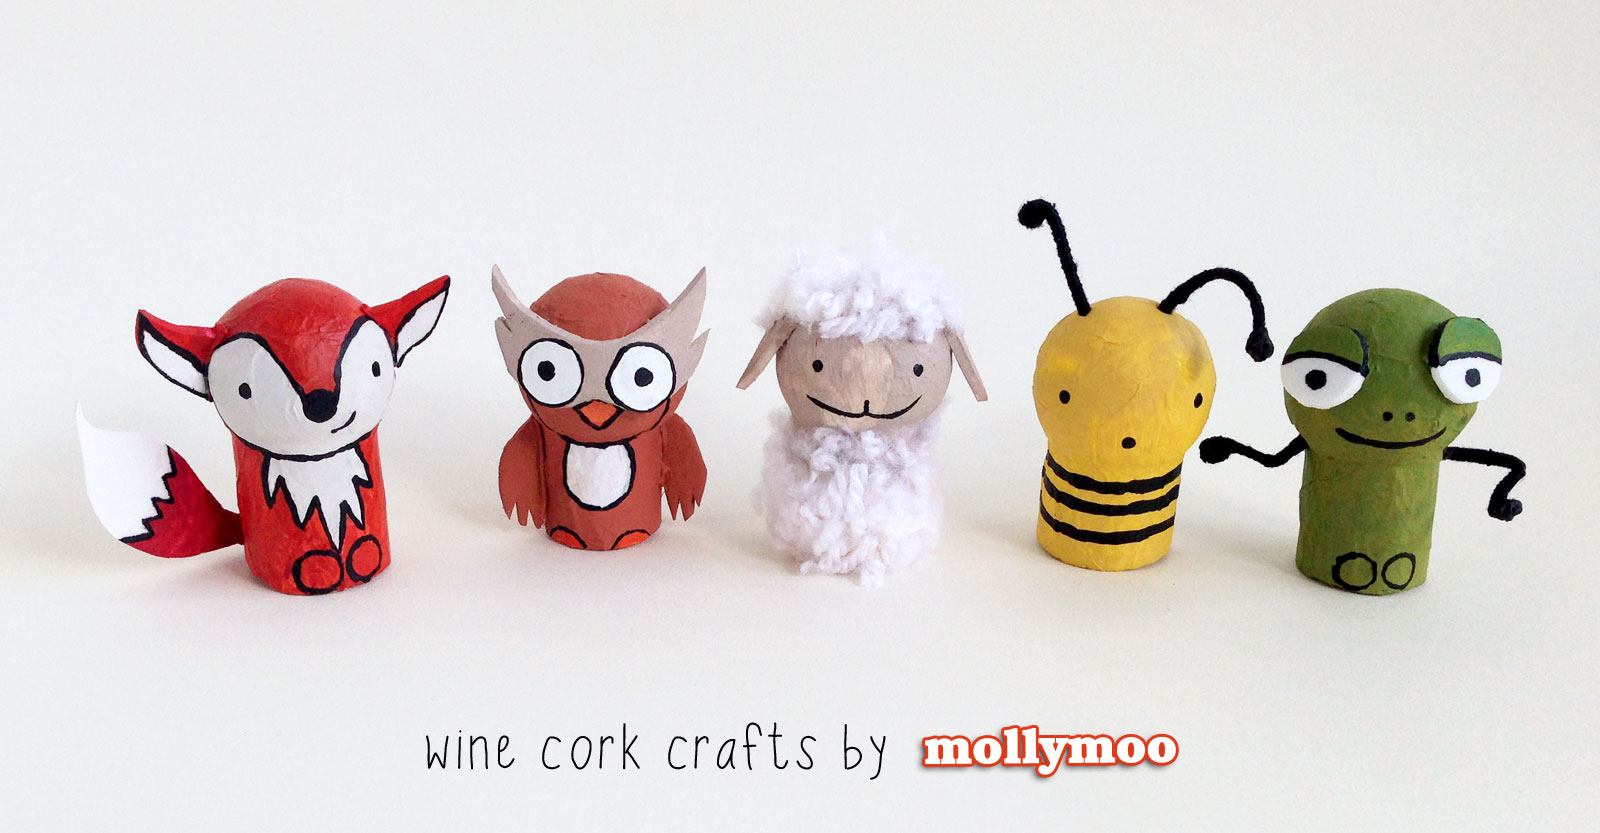 wine-cork-crafts-mollymoo